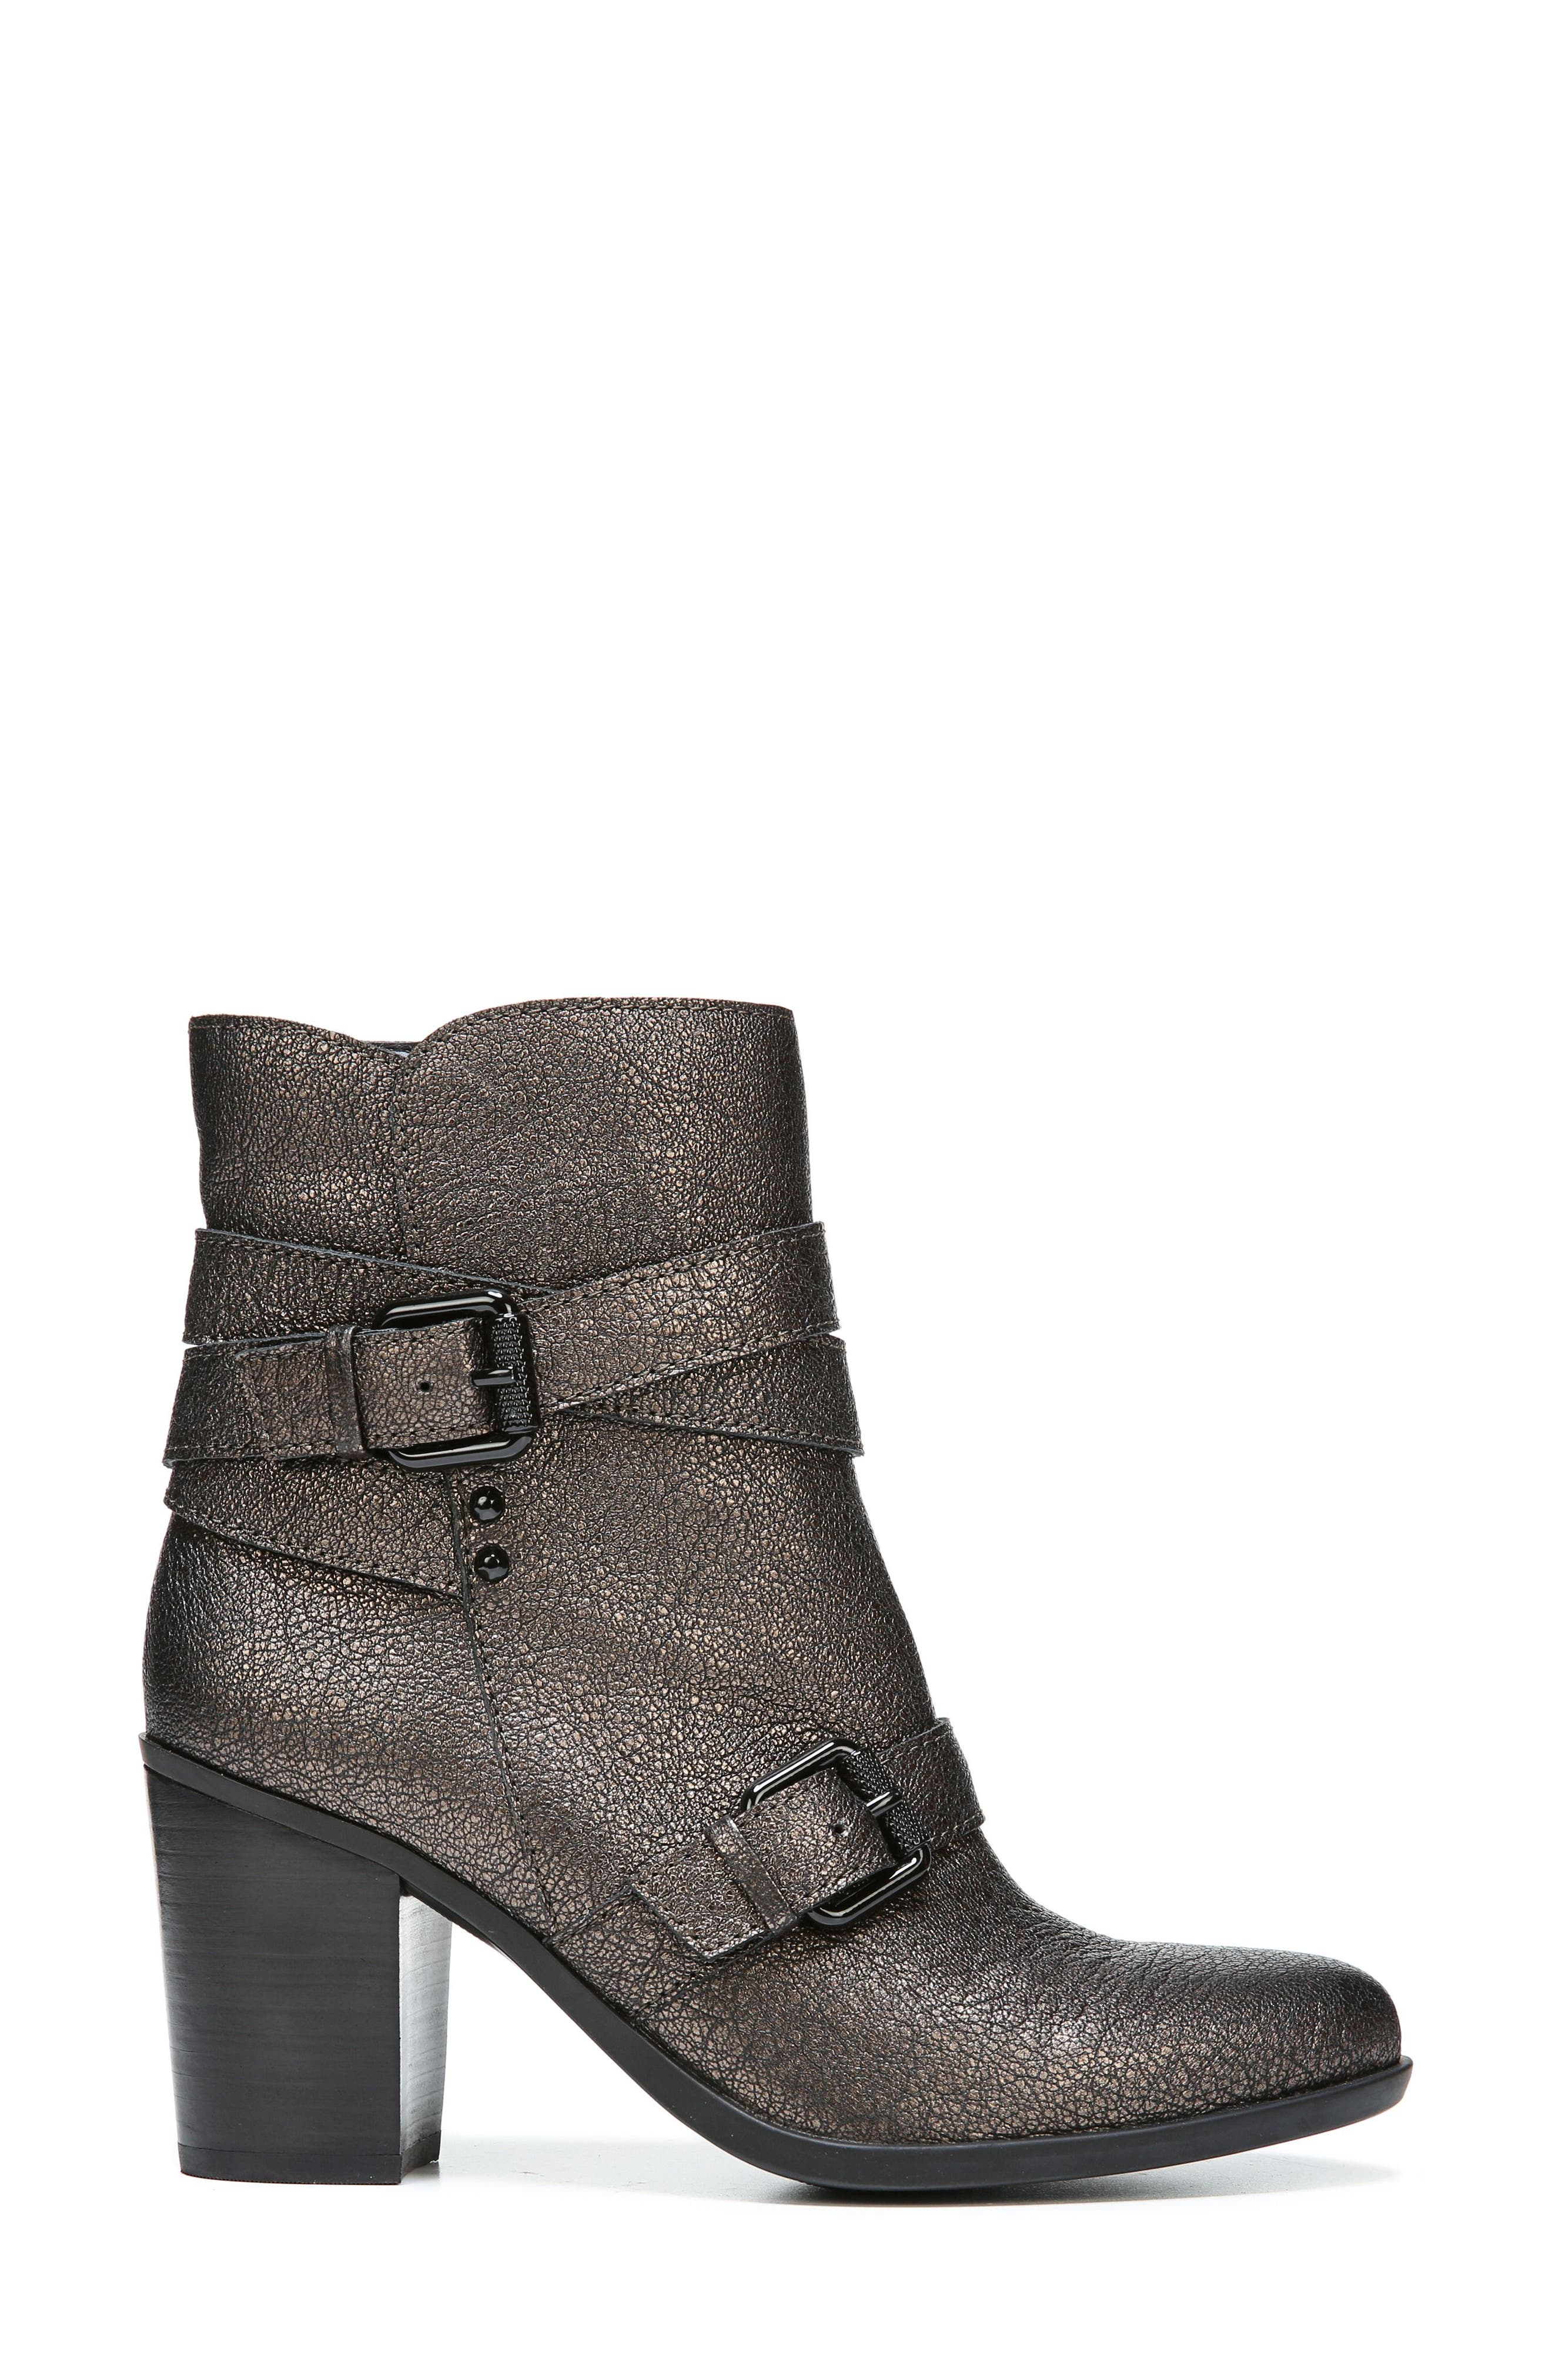 Karlie Buckle Bootie,                             Alternate thumbnail 3, color,                             Bronze Leather